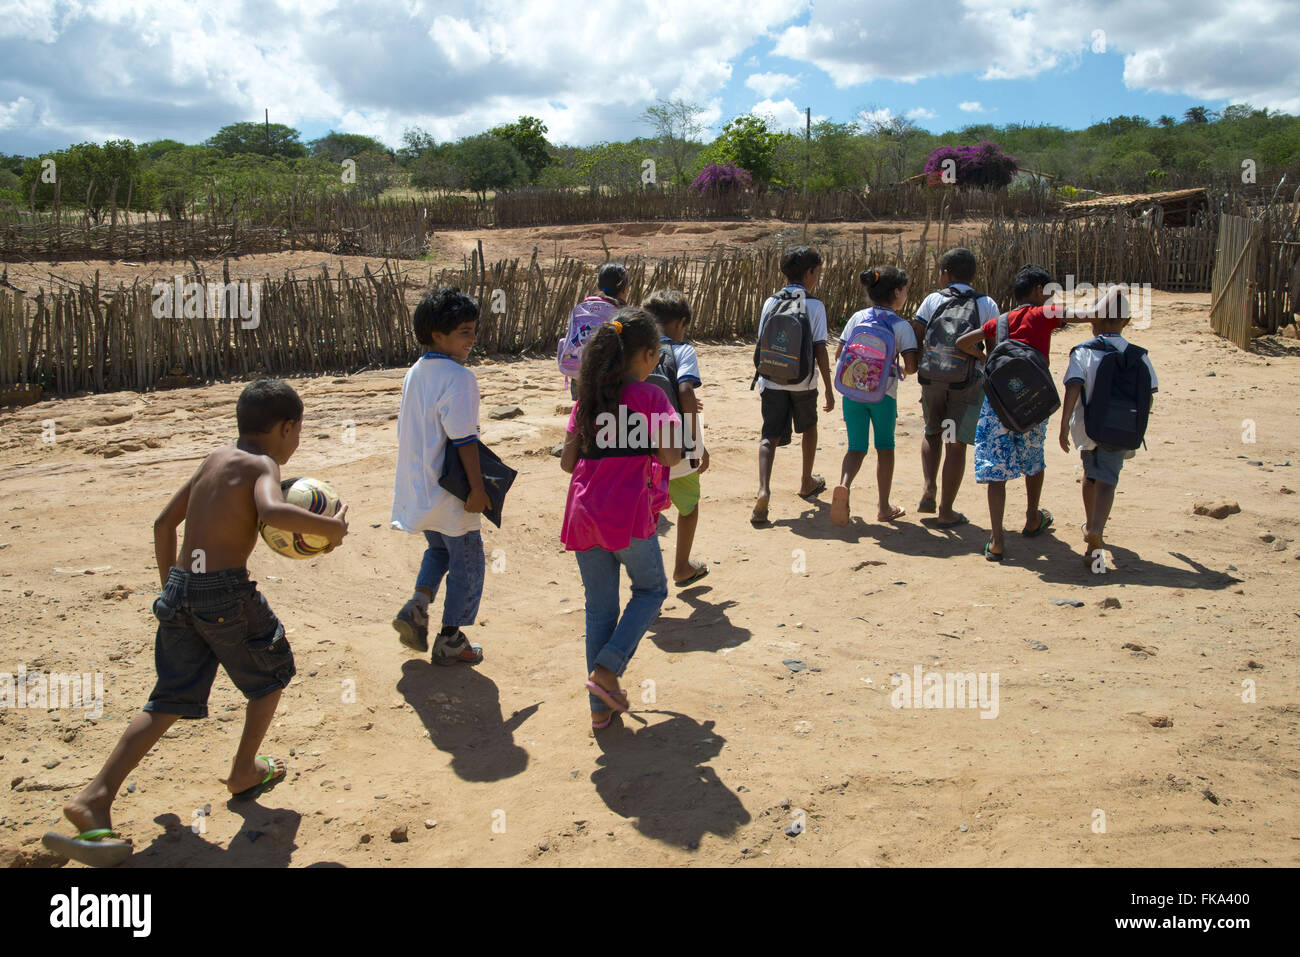 Children ethnicity Kapinawá out of state school or community village Thresher - Stock Image